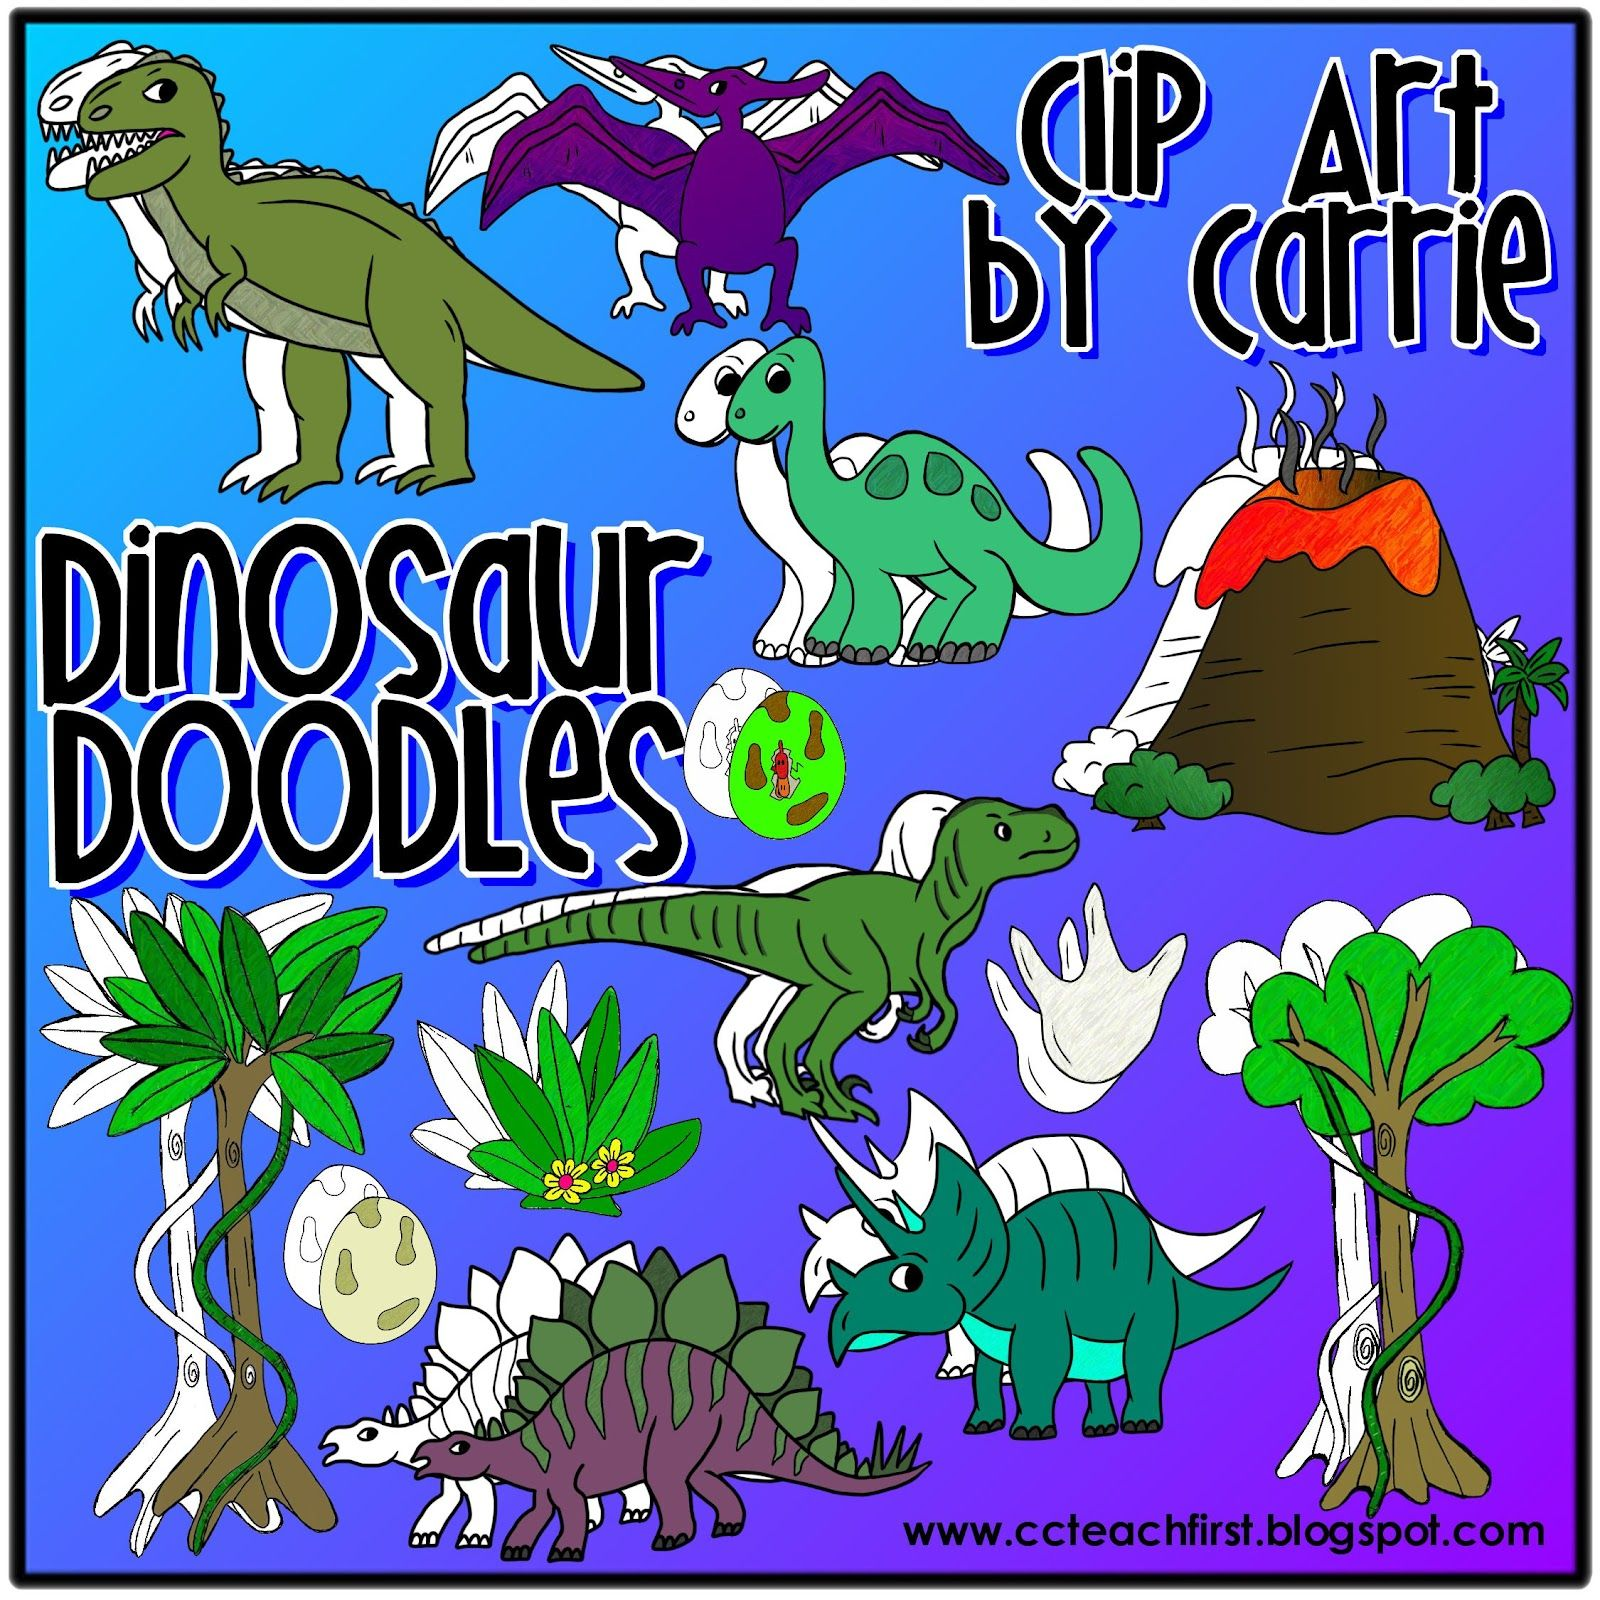 Dinosaur Doodles By Clip Art By Carrie Teachfirst